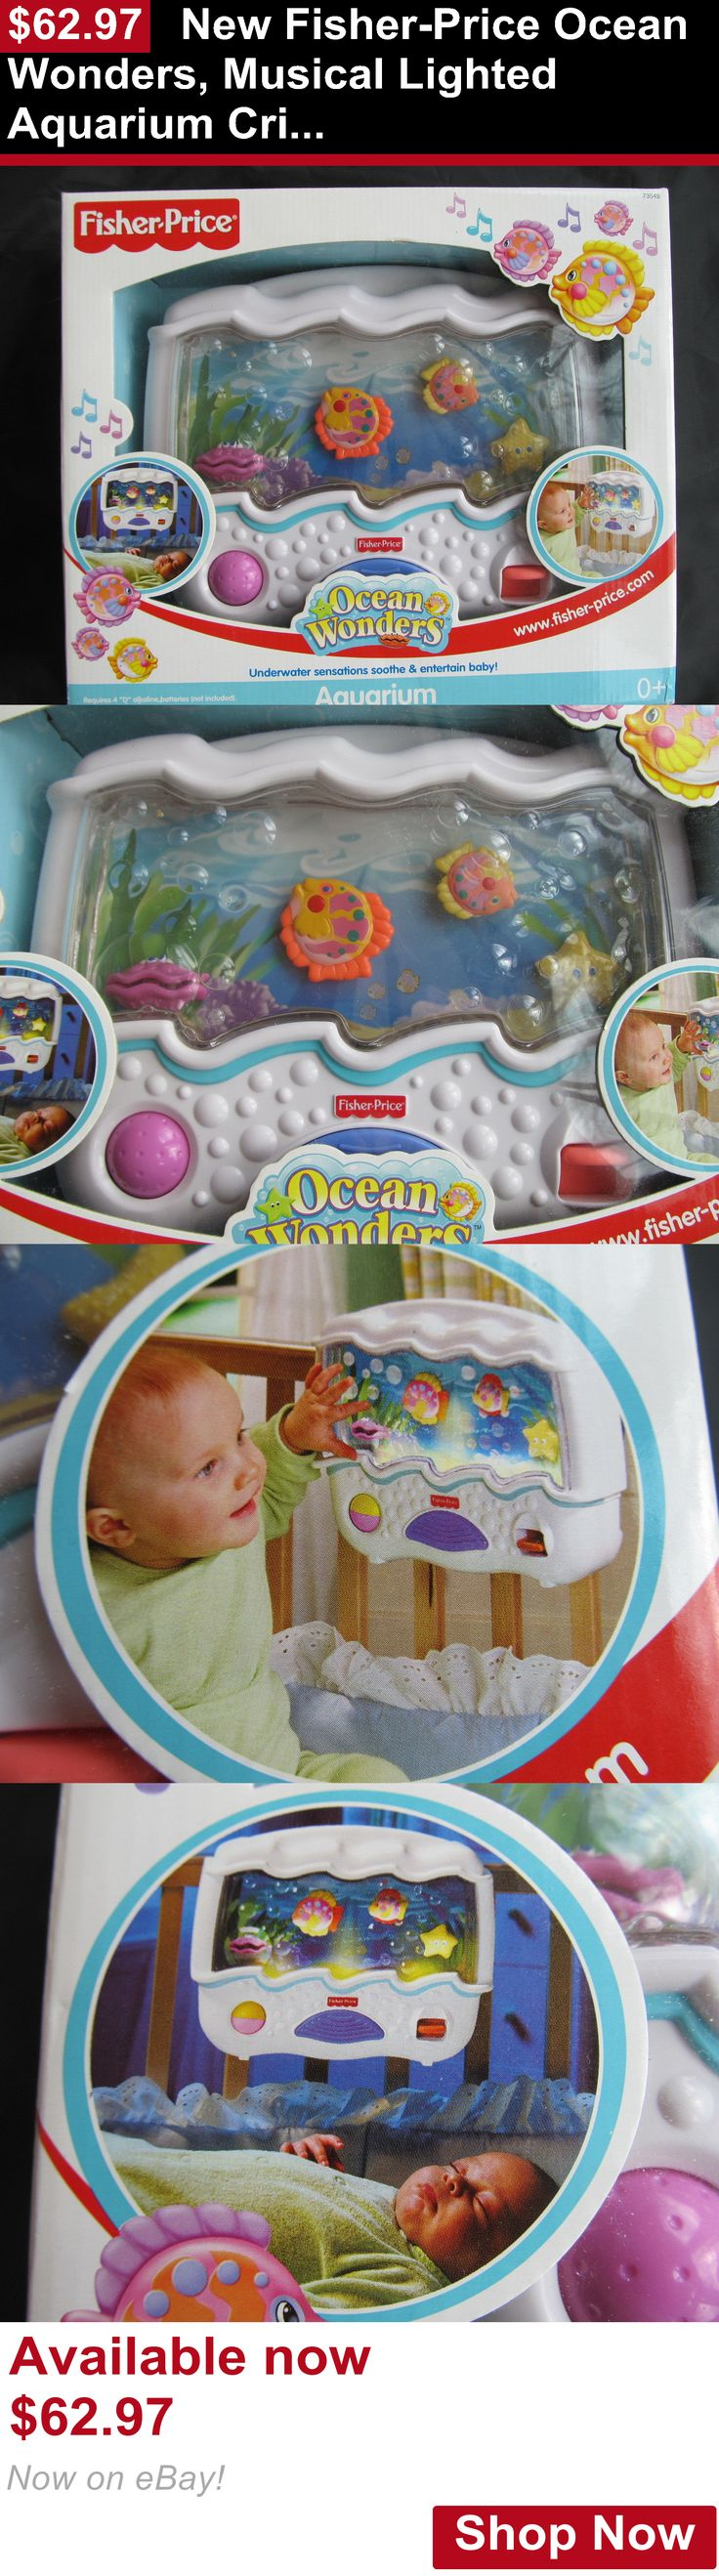 Crib Toys: New Fisher-Price Ocean Wonders, Musical Lighted Aquarium Crib Toy Attachment Nib BUY IT NOW ONLY: $62.97